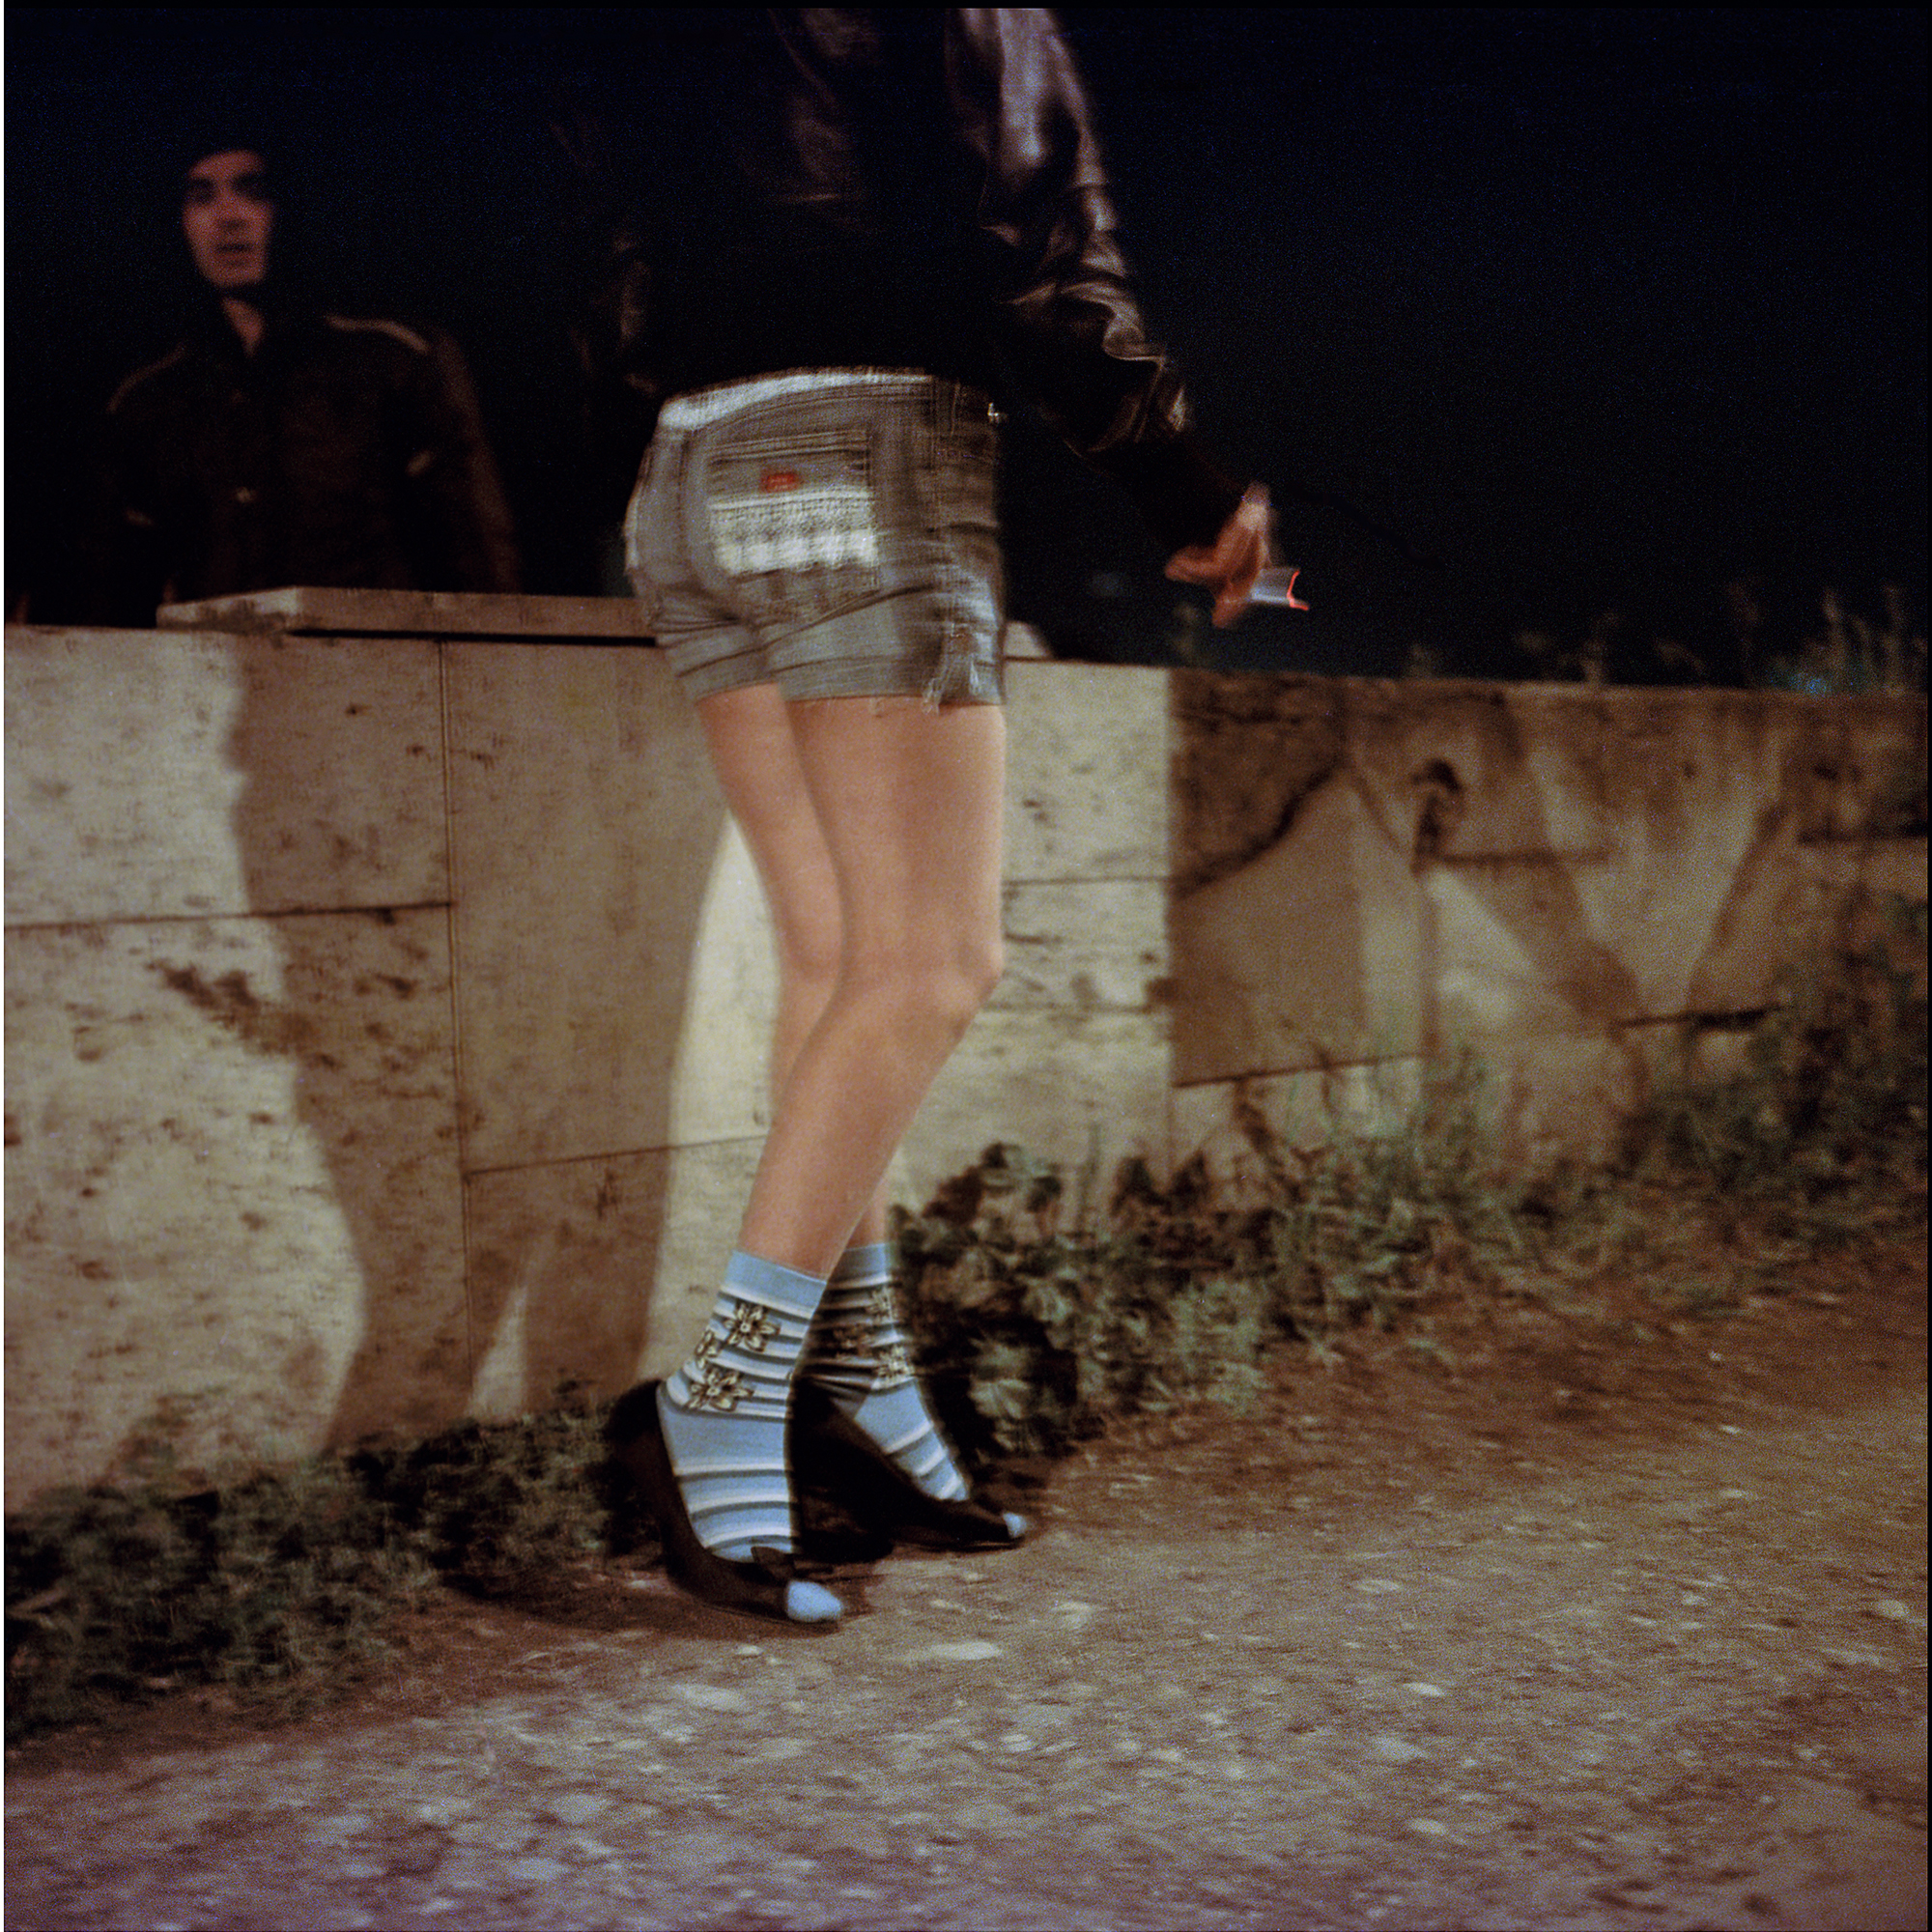 Alija, 20 years old, lives with and works for a pimp whom she says she is in love with, but also wants to leave because he is violent and controlling. Skopje, Macedonia 2010